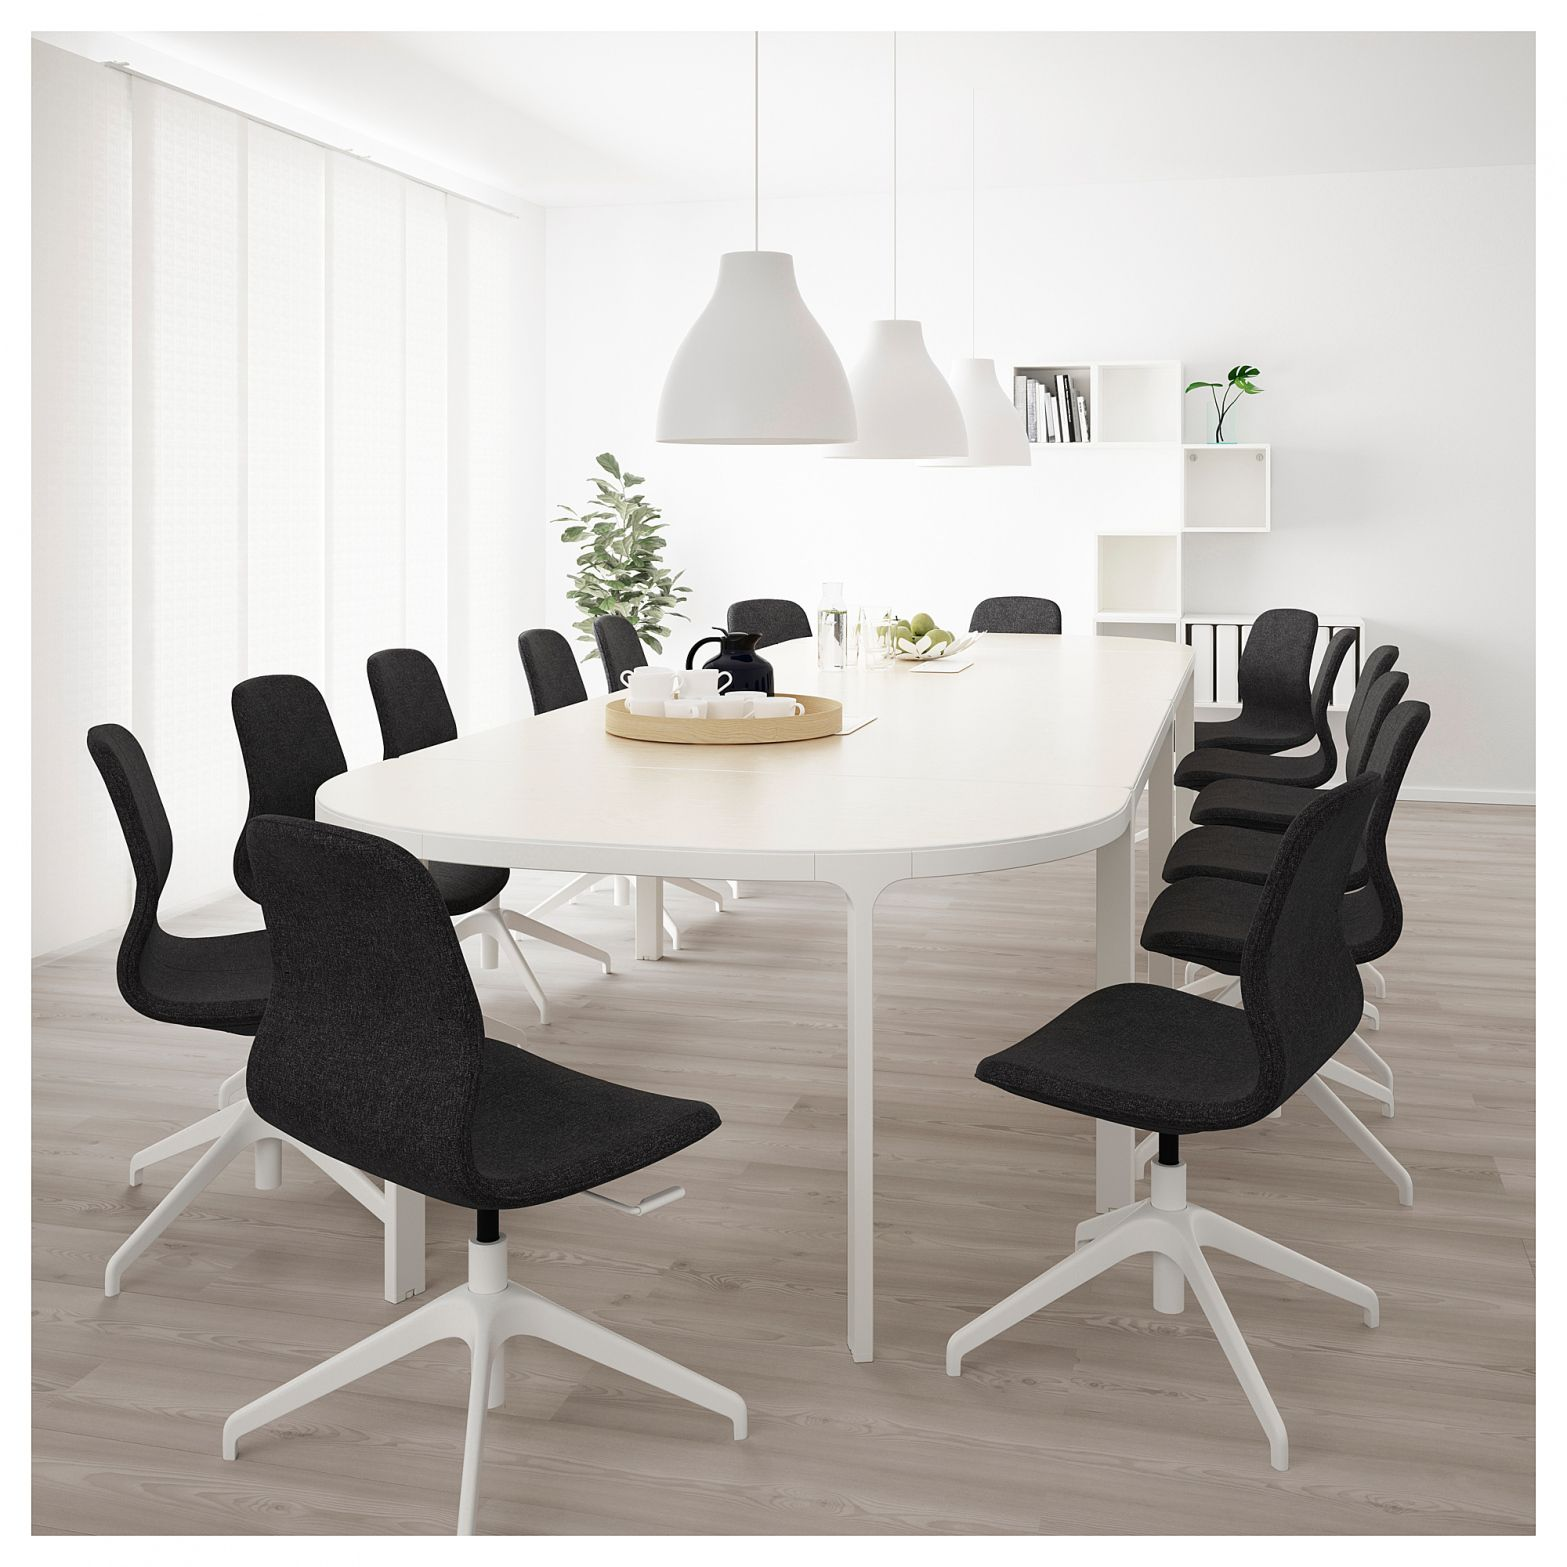 ikea home office furniture. 2018 Ikea Office Conference Table - Executive Home Furniture Check More At Http:/ U